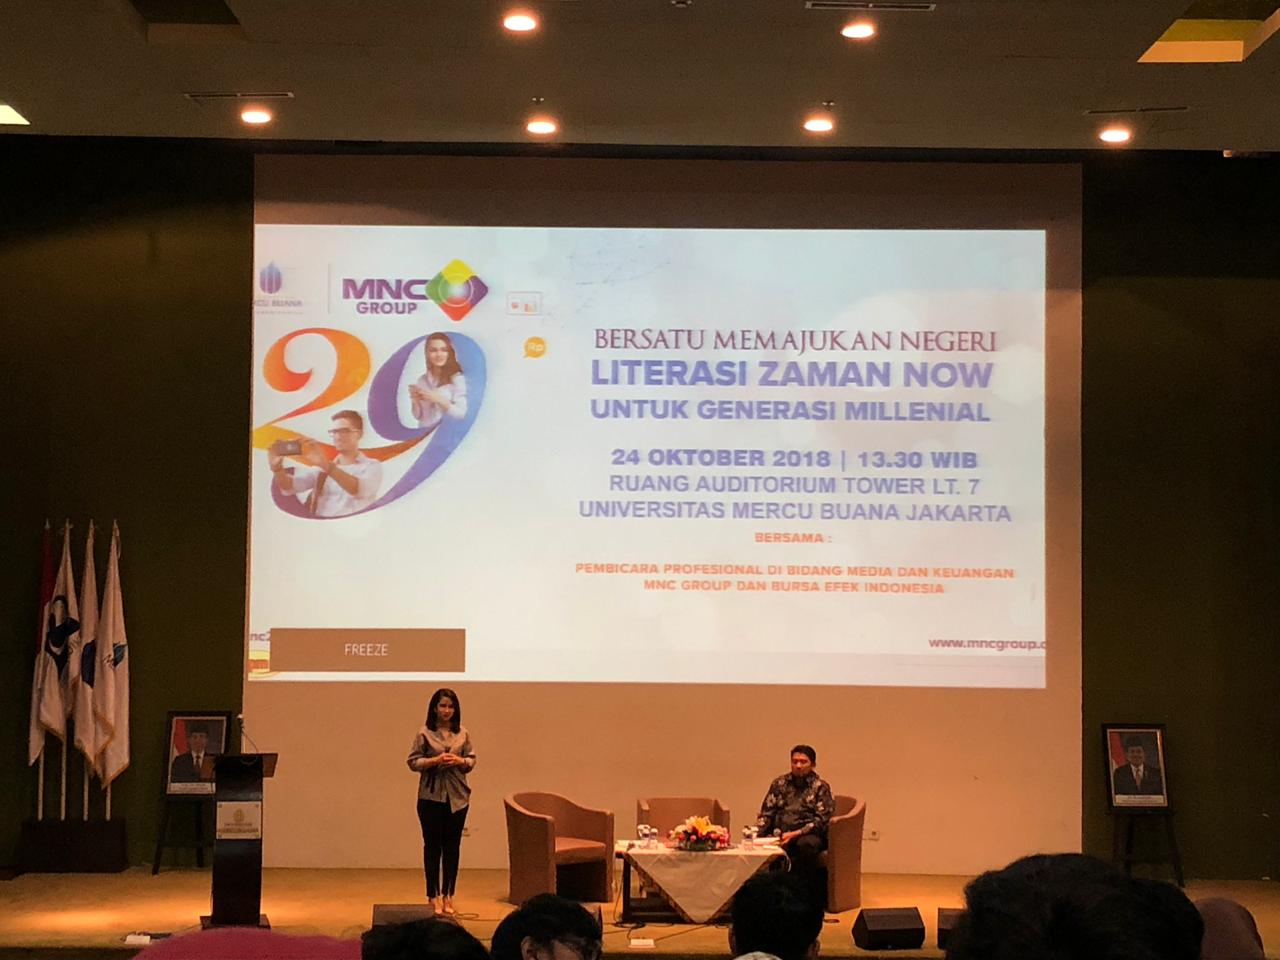 https: img-z.okeinfo.net content 2018 10 24 65 1968432 mnc-group-gelar-literasi-media-di-universitas-mercu-buana-0SSaVmMQvS.jpeg